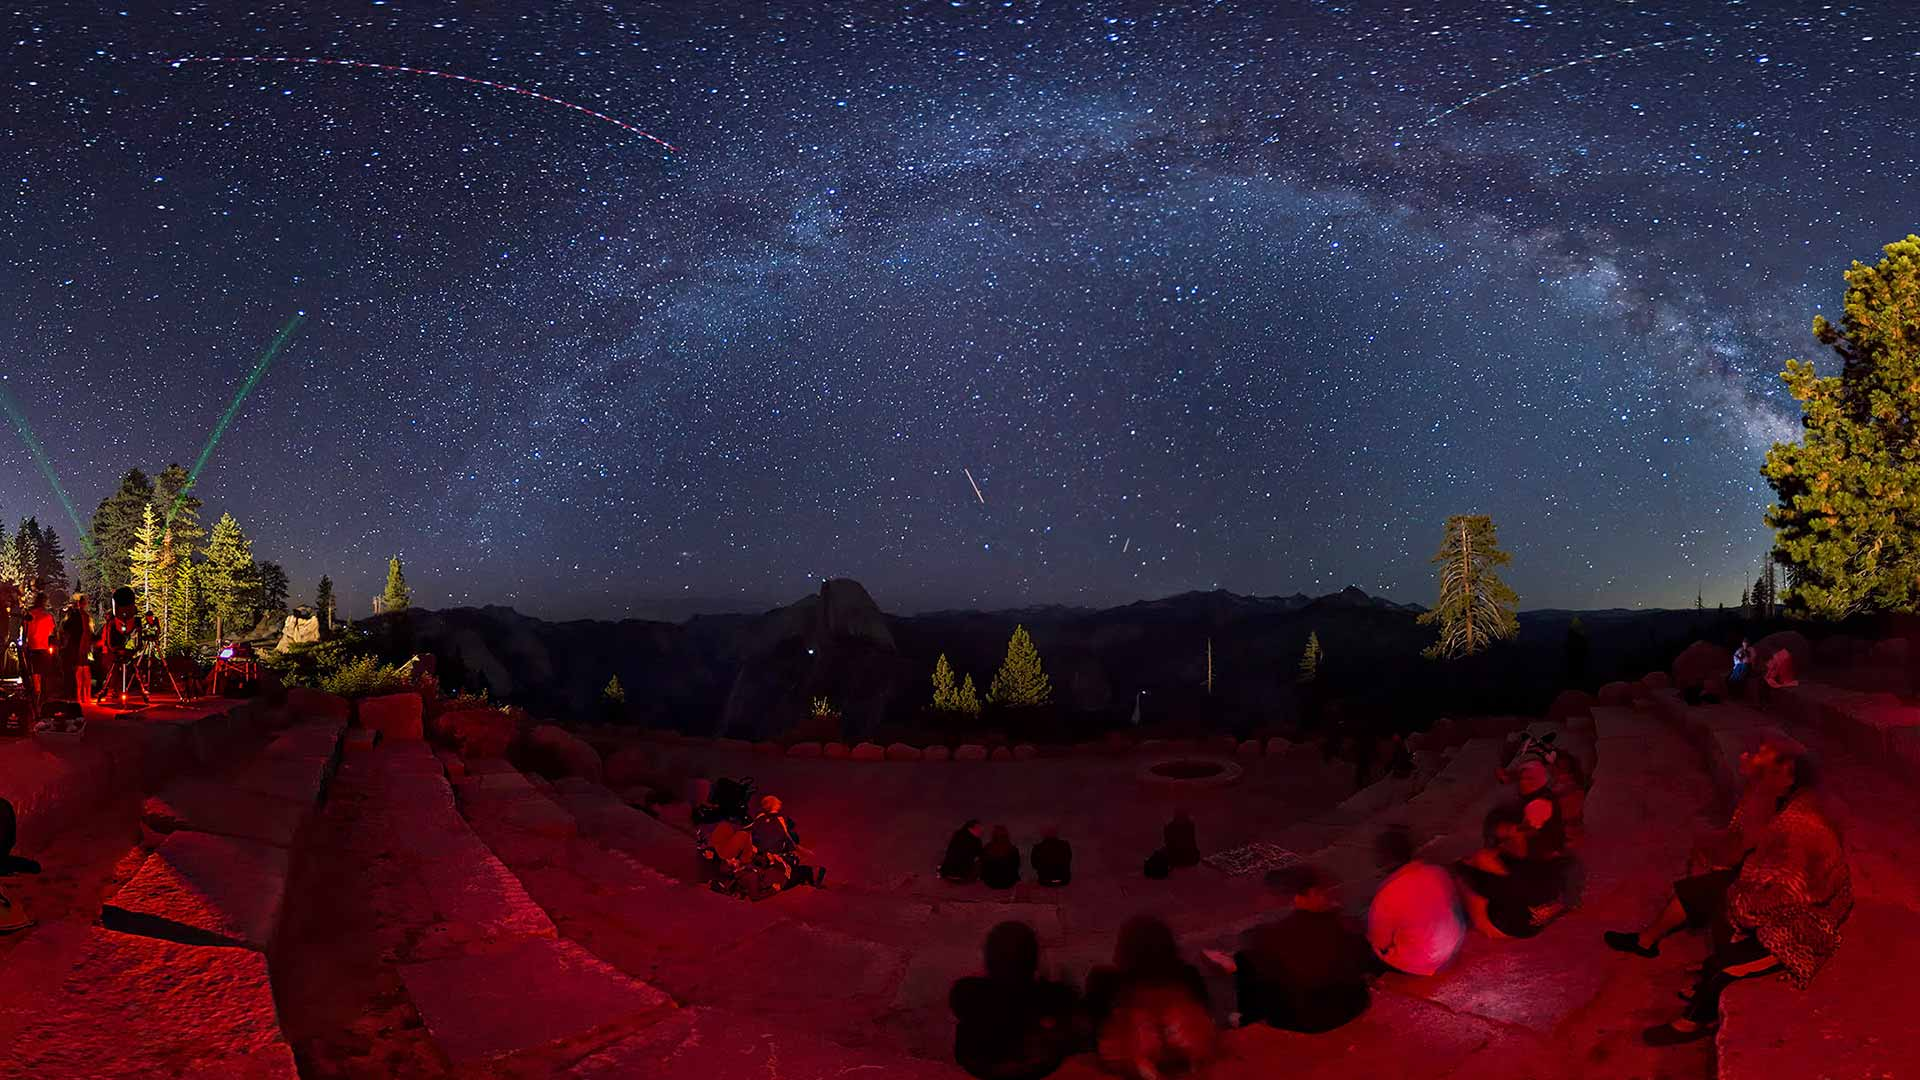 Panoramic view of the night sky over Yosemite National Park. The midnight blue sky is blanketed with stars. The ground is illuminated by a low red hue.